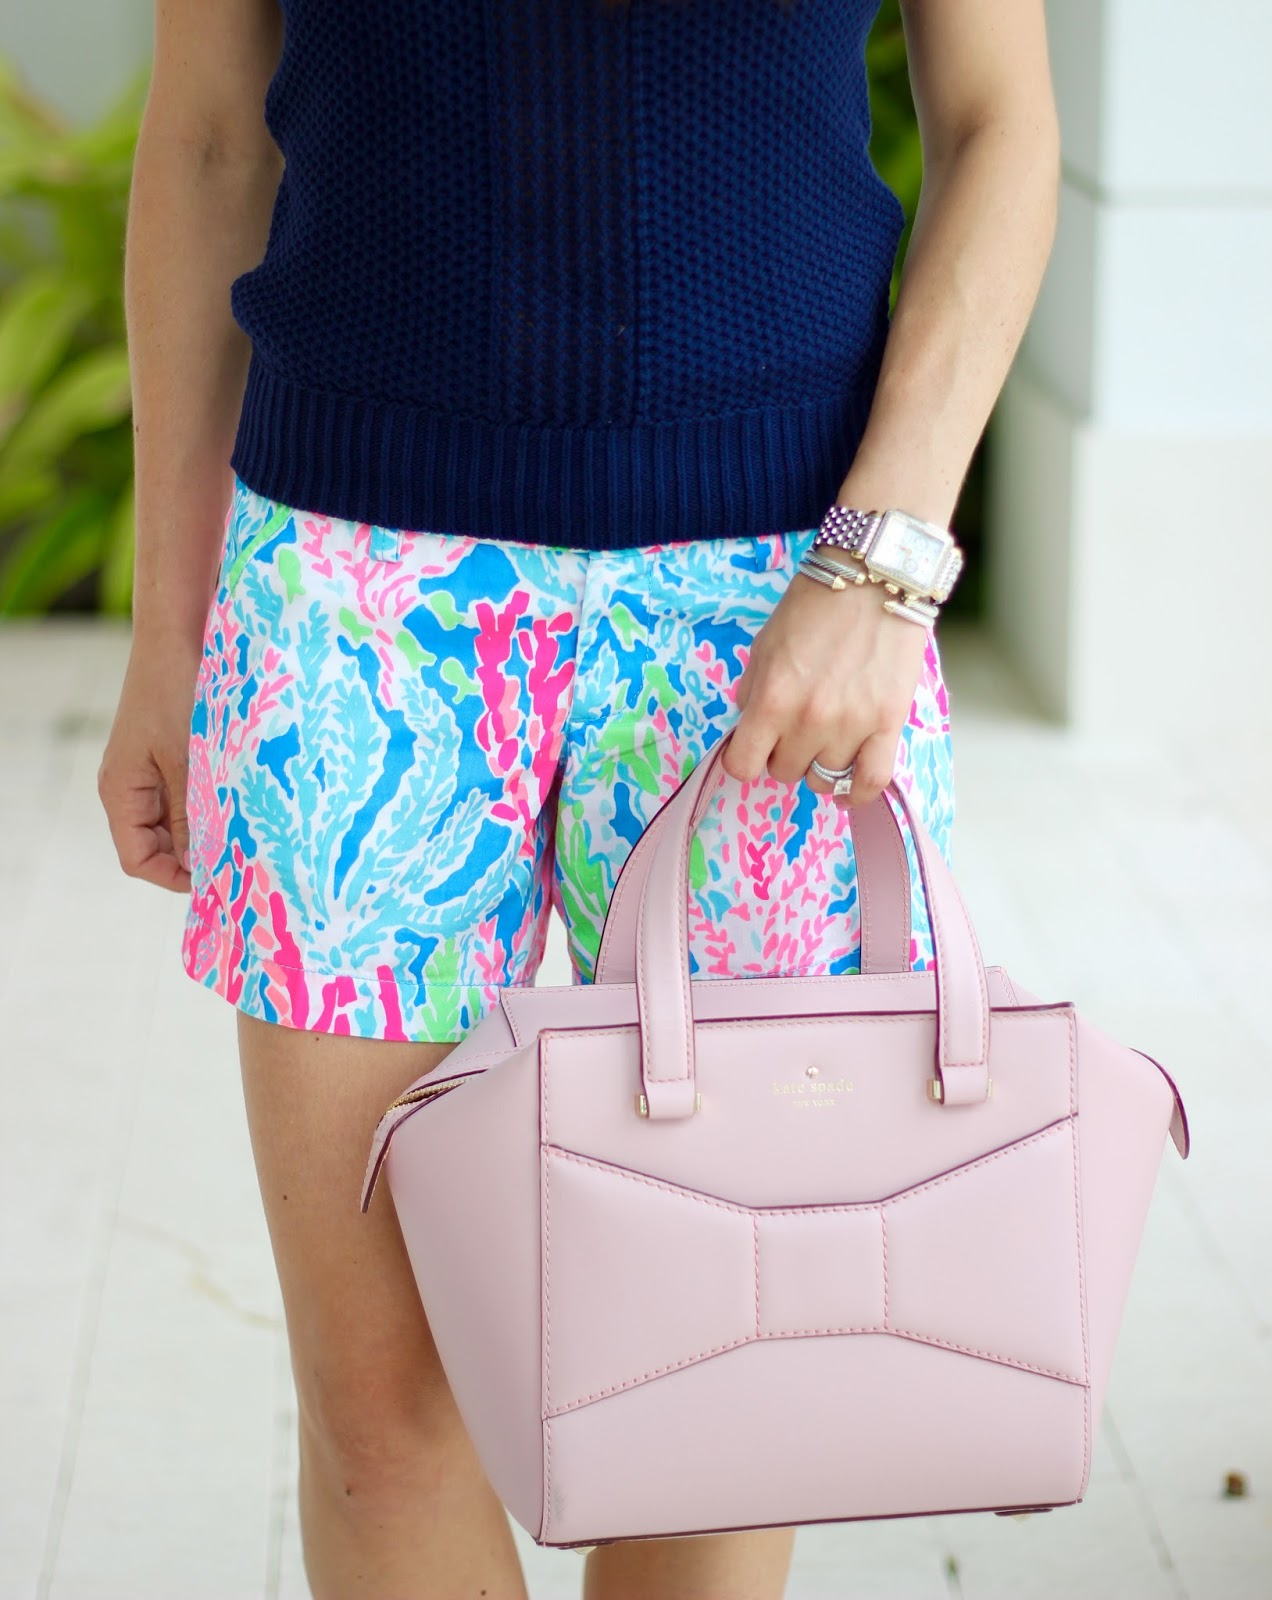 Lilly Pulitzer Lets Cha Cha Shorts